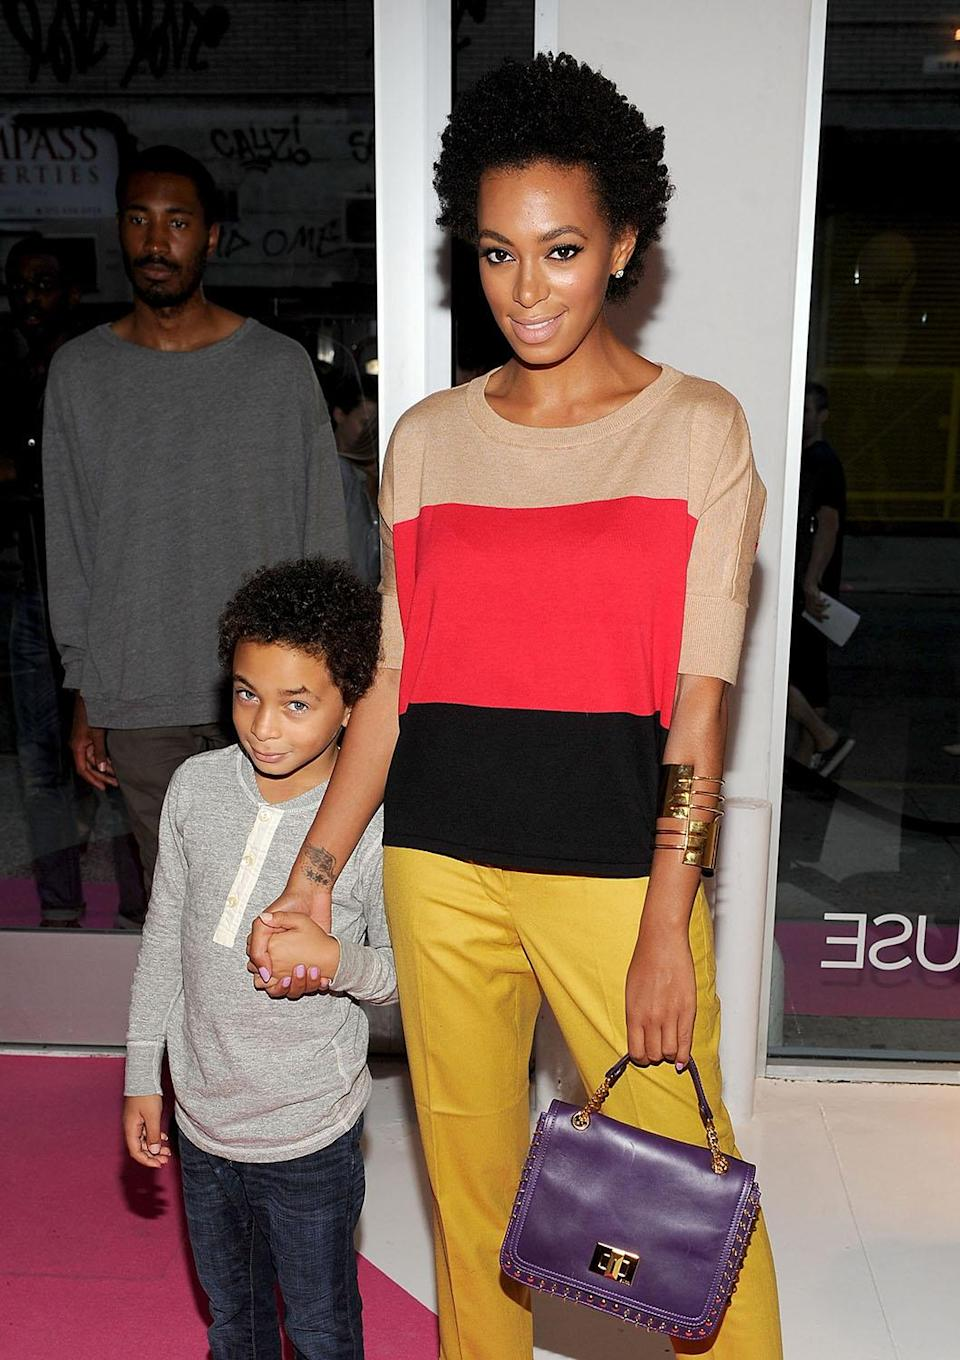 <p>Solange Knowles became a mother at 17. (Photo by Jamie McCarthy/WireImage for Macy's) </p>